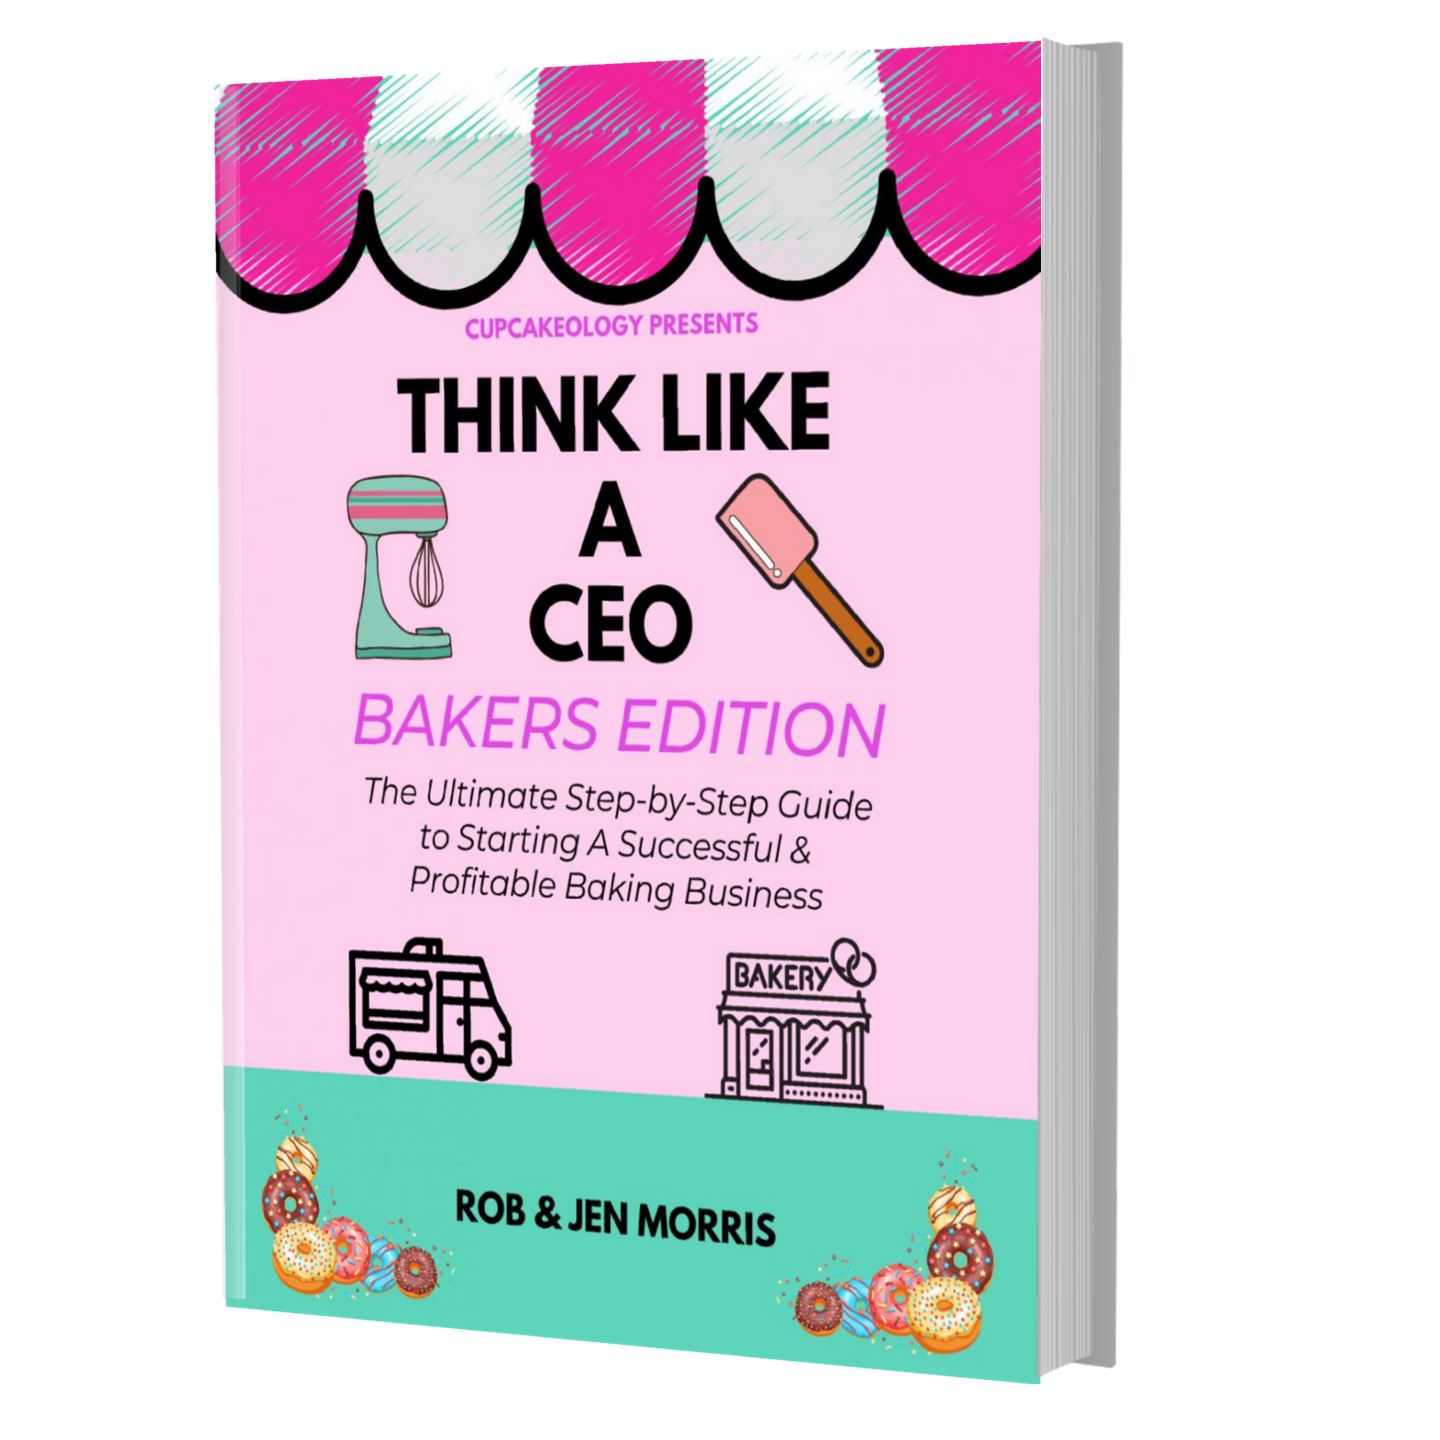 think like a ceo-bakers edition